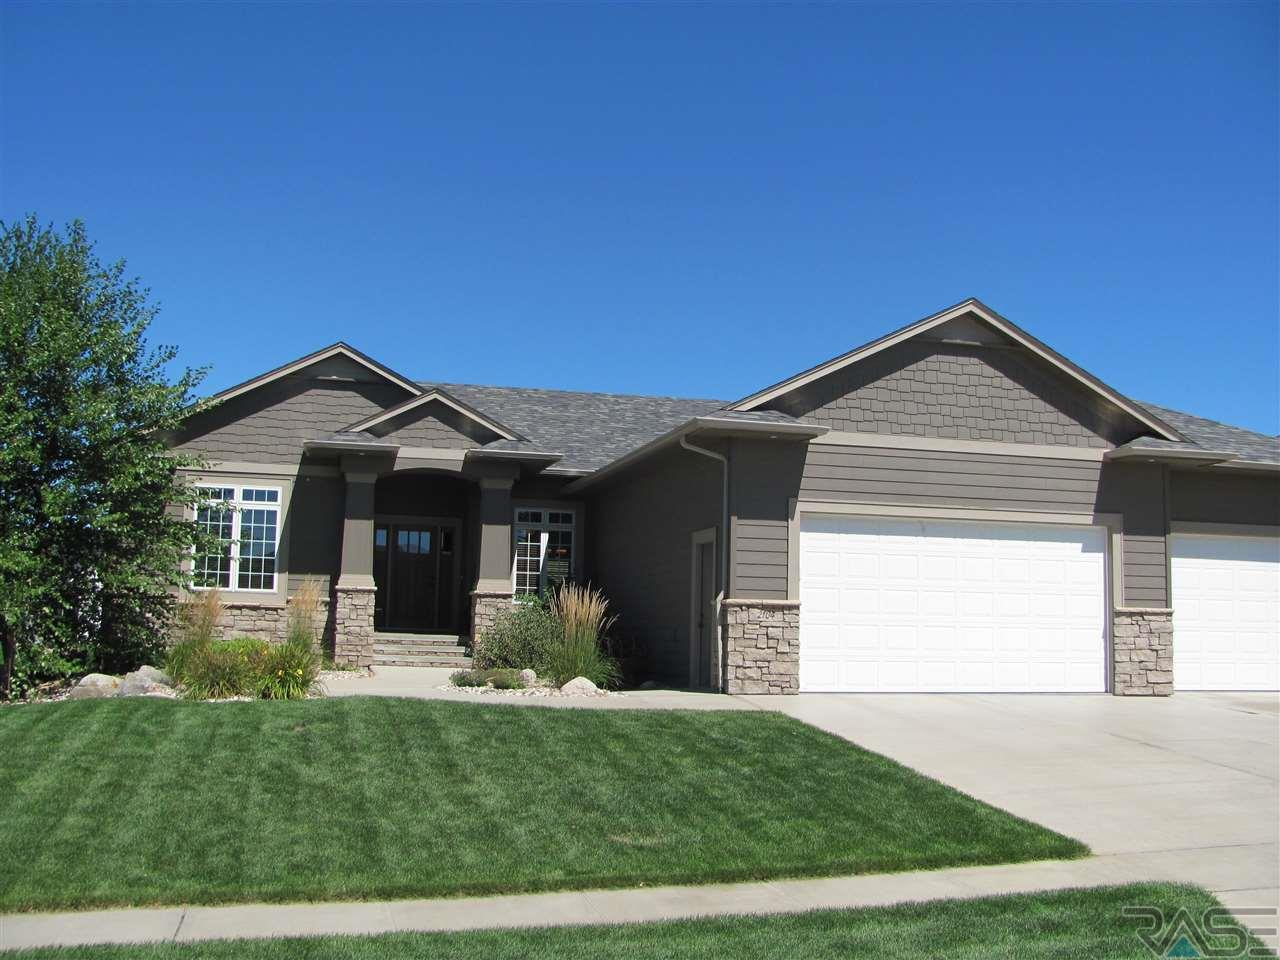 2104 S Silverpine Ct, SIOUX FALLS